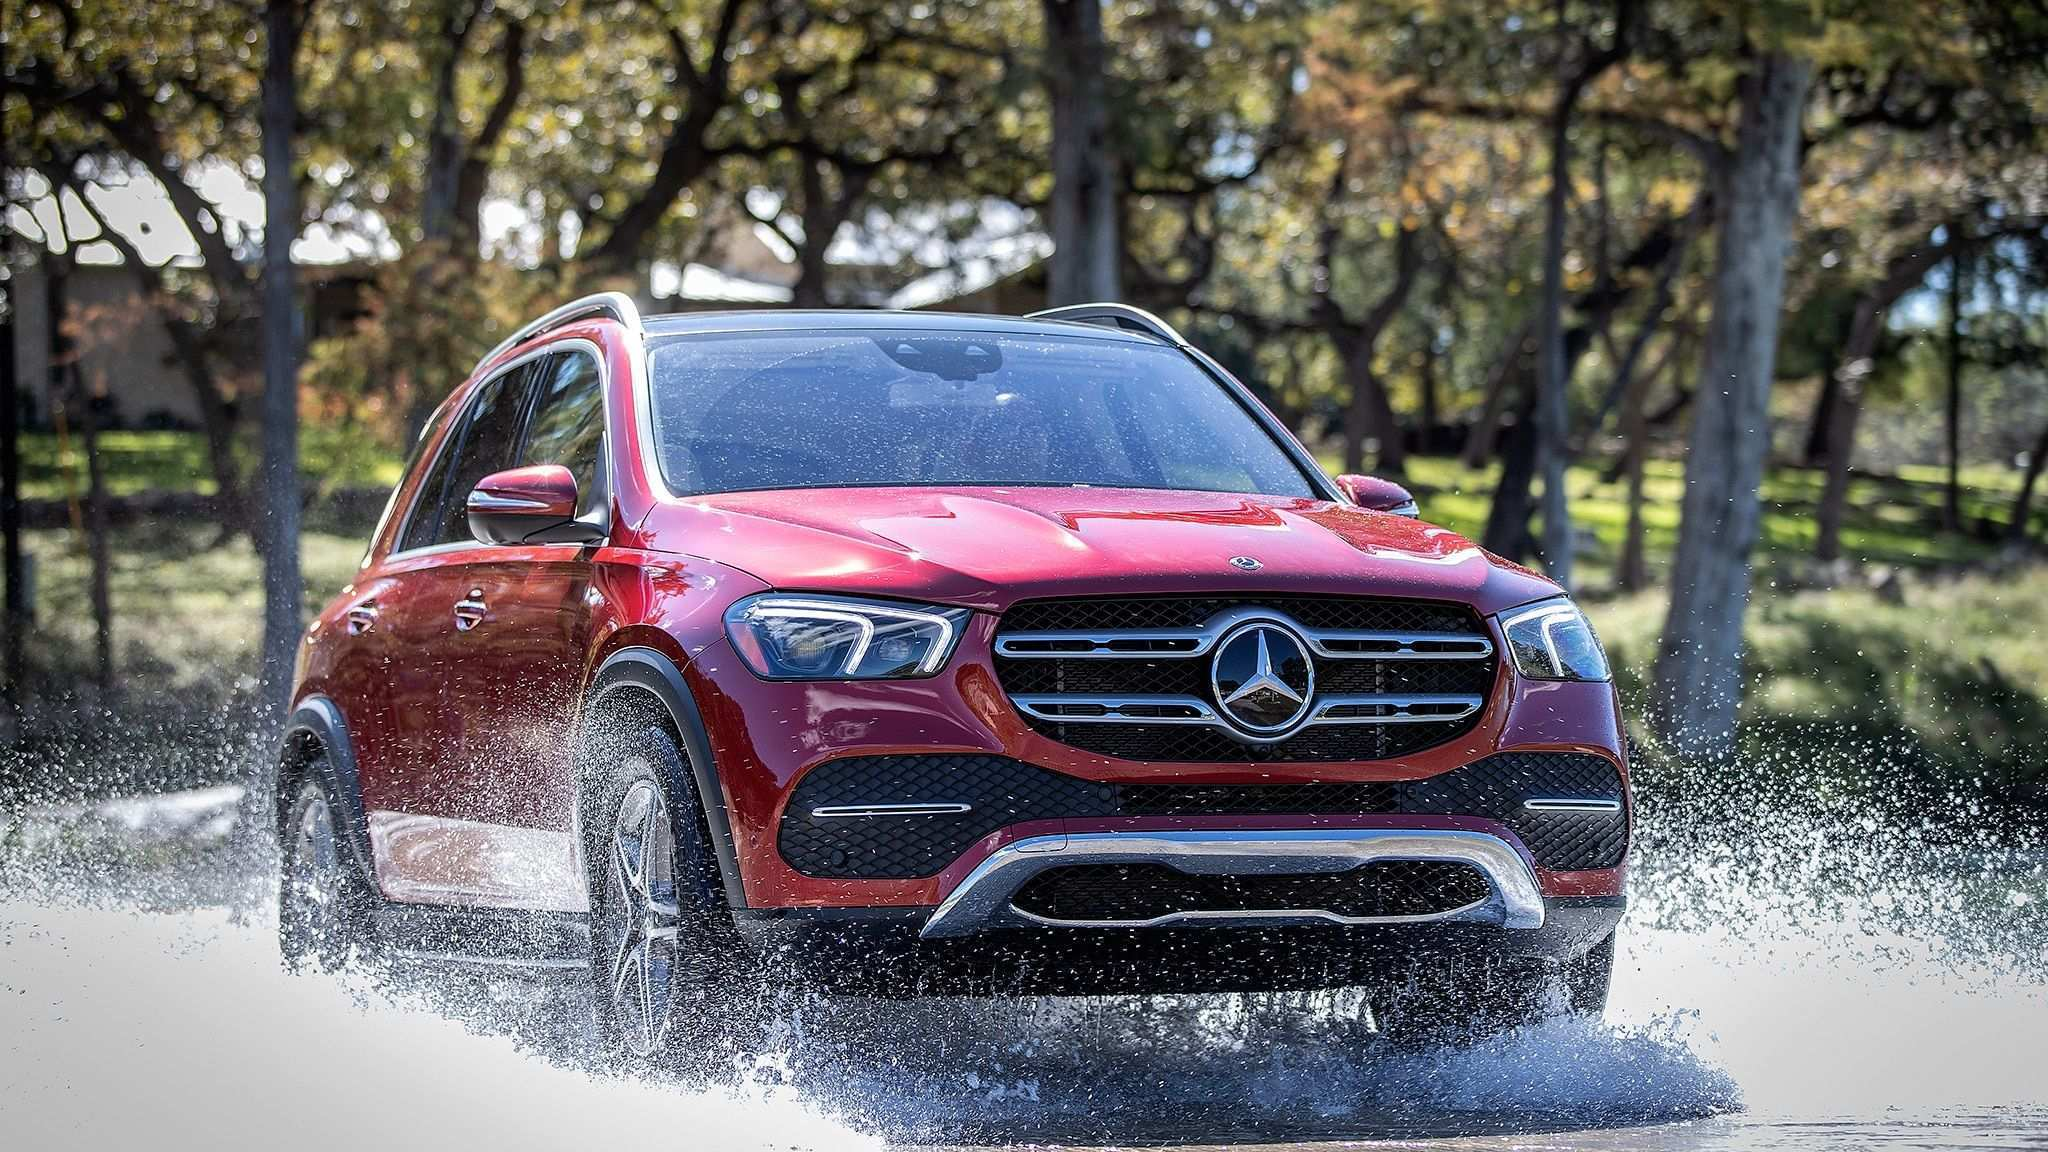 48 Concept of 2020 Mercedes Gl Class Images for 2020 Mercedes Gl Class